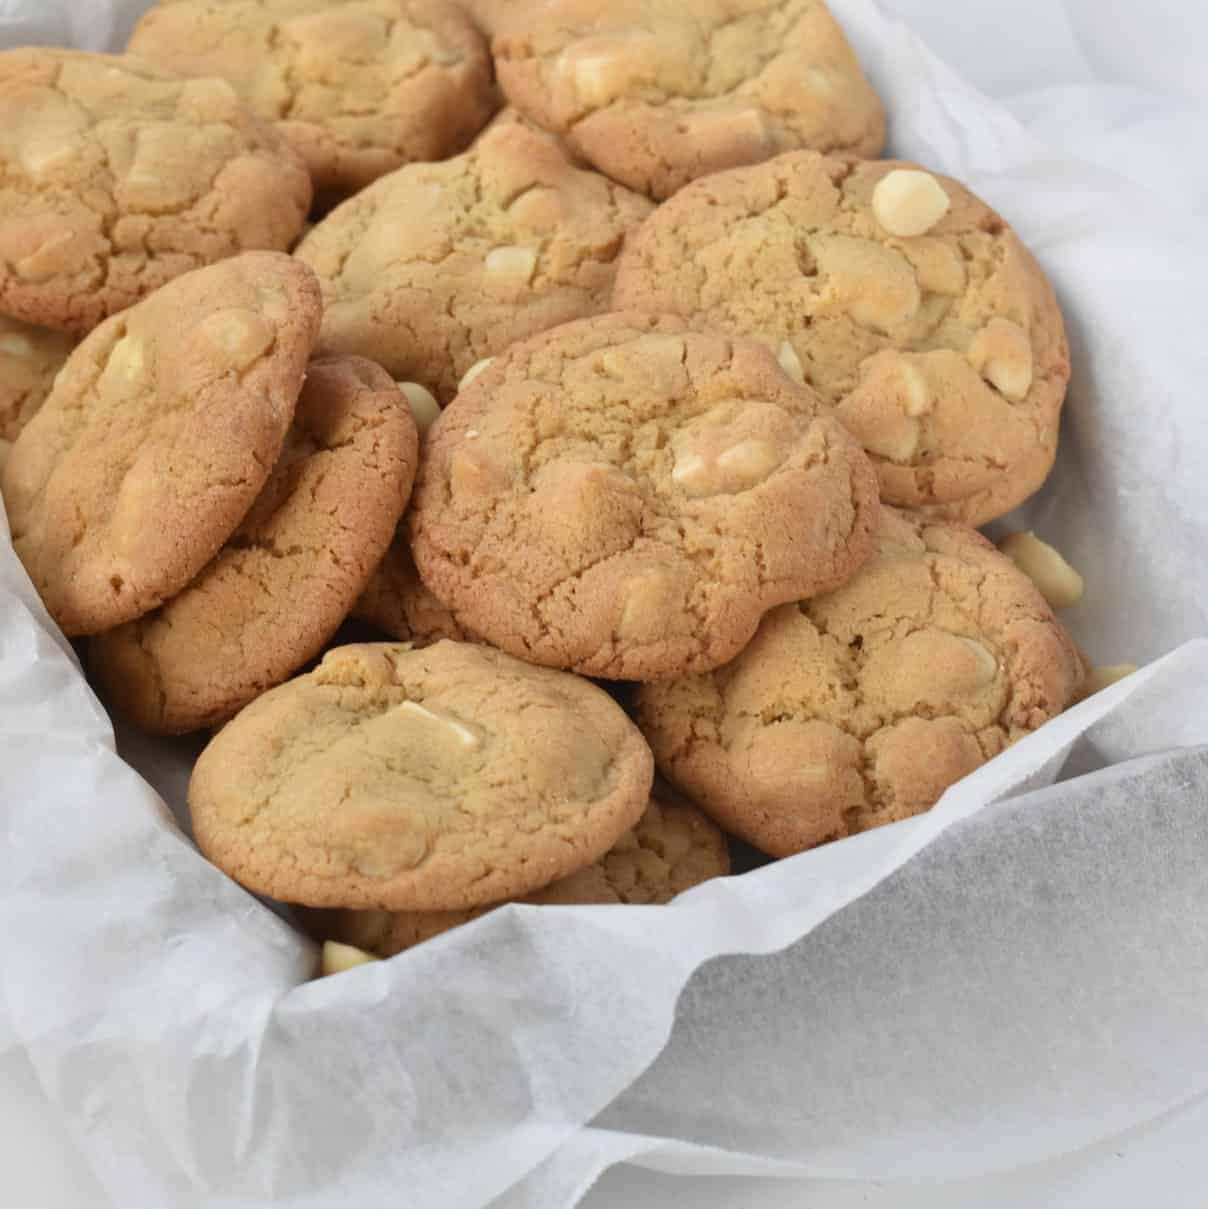 White Chocolate Macadamia Nut Cookies sitting in a pile.